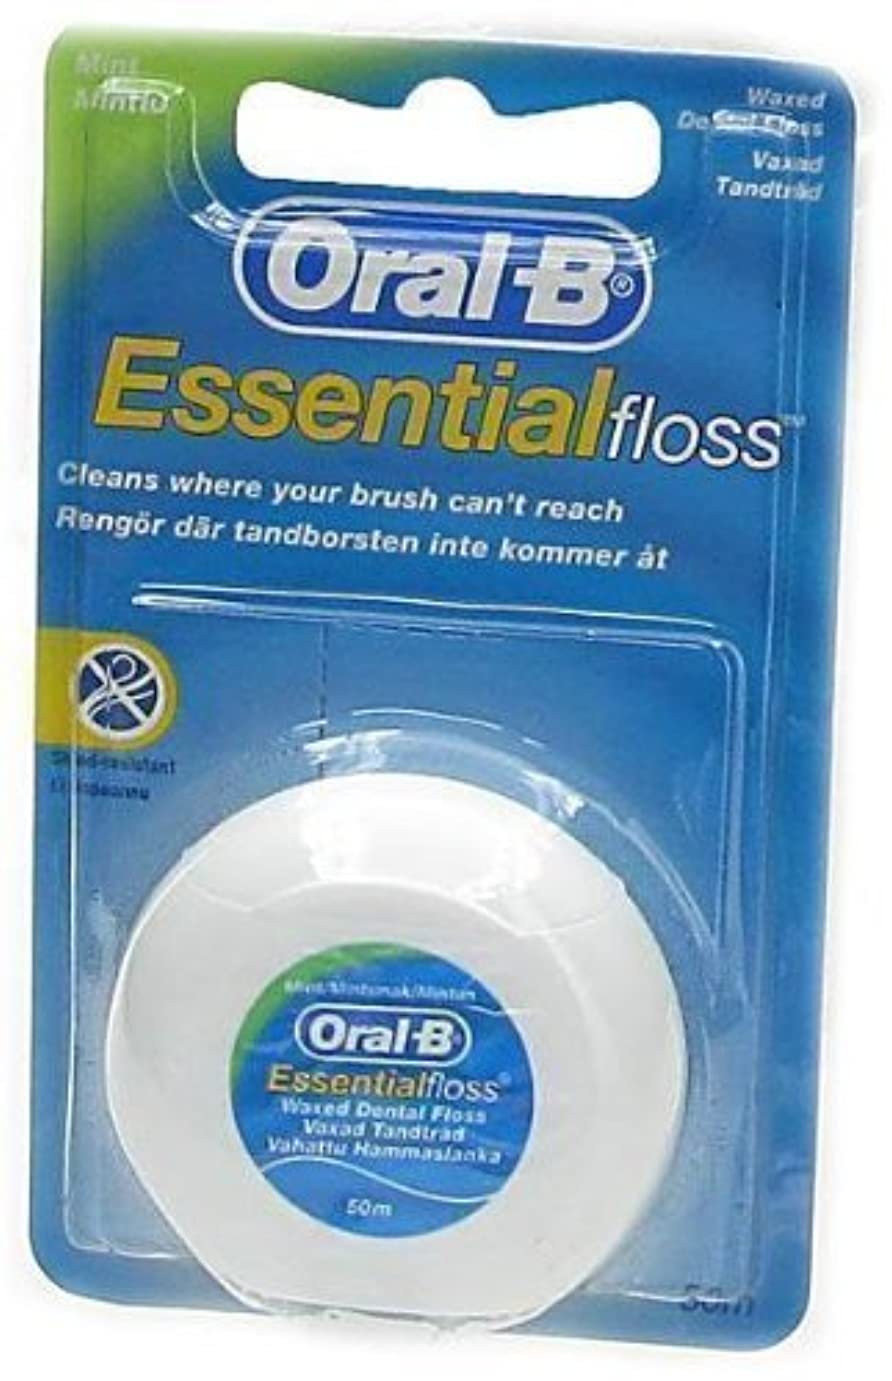 スポーツ印象的魔法ORAL-B DENTAL FLOSS ESSENTIAL MINT WAX 50M - 1 PACK by Oral-B [並行輸入品]